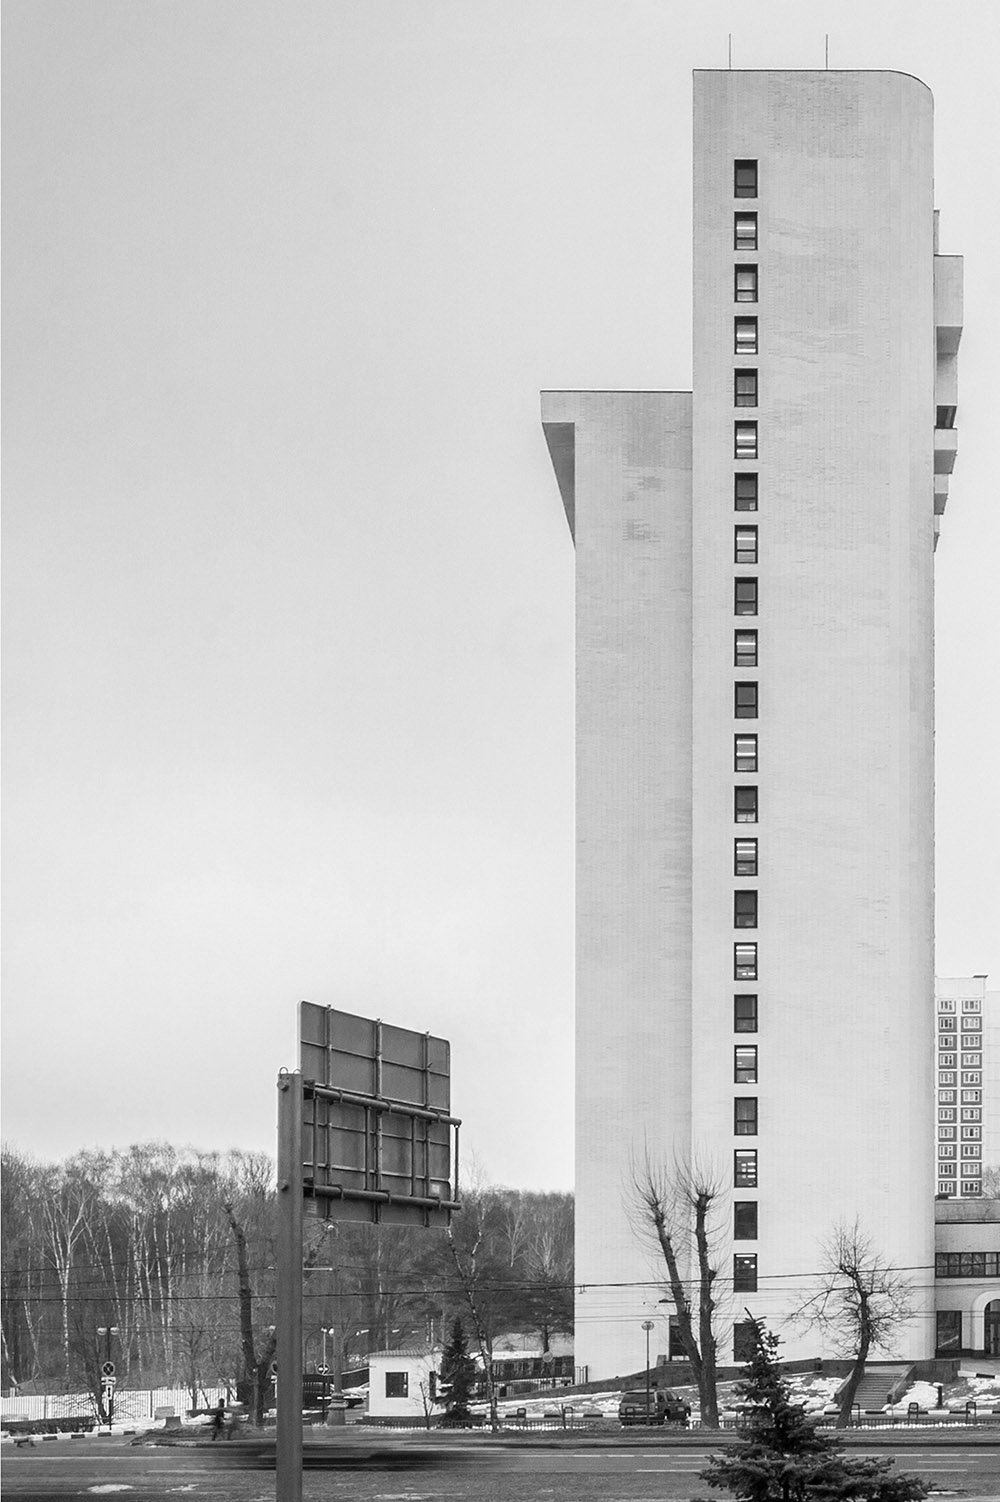 This Is Not a Tower | Denis Esakov